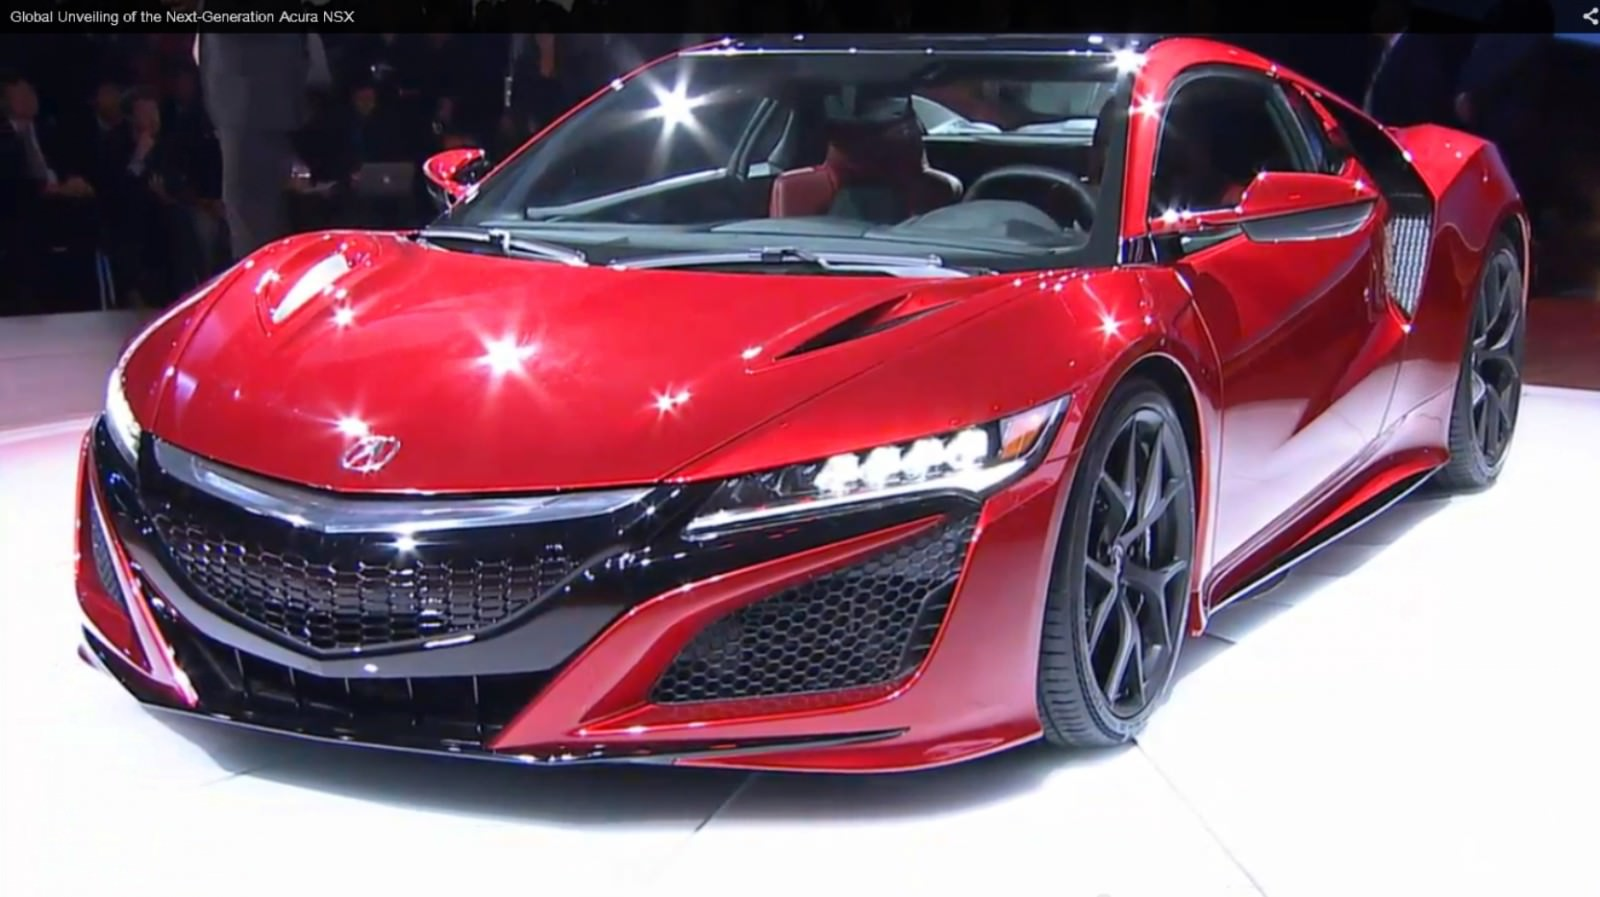 2016 acura nsx. Black Bedroom Furniture Sets. Home Design Ideas